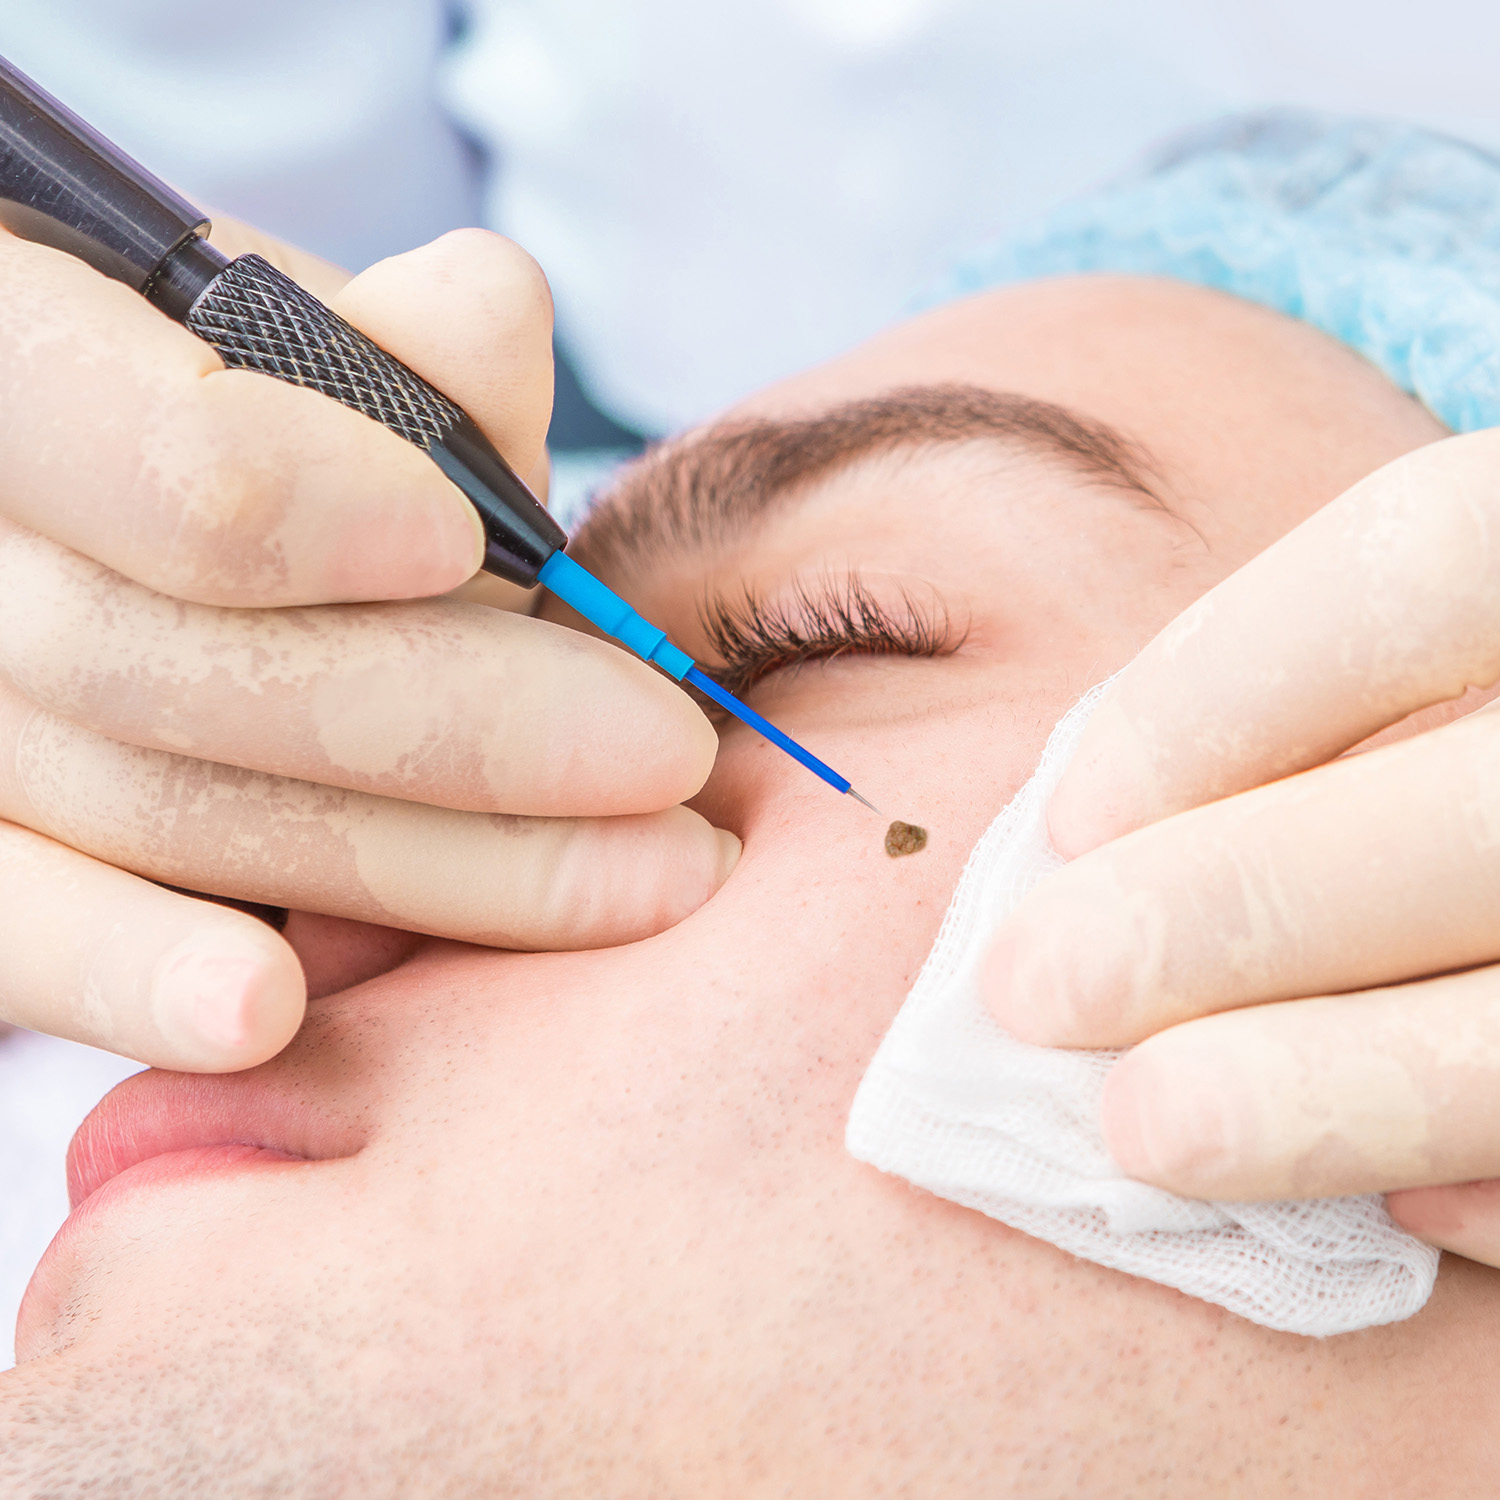 Radiofrequency removal of a mole on a man's cheek